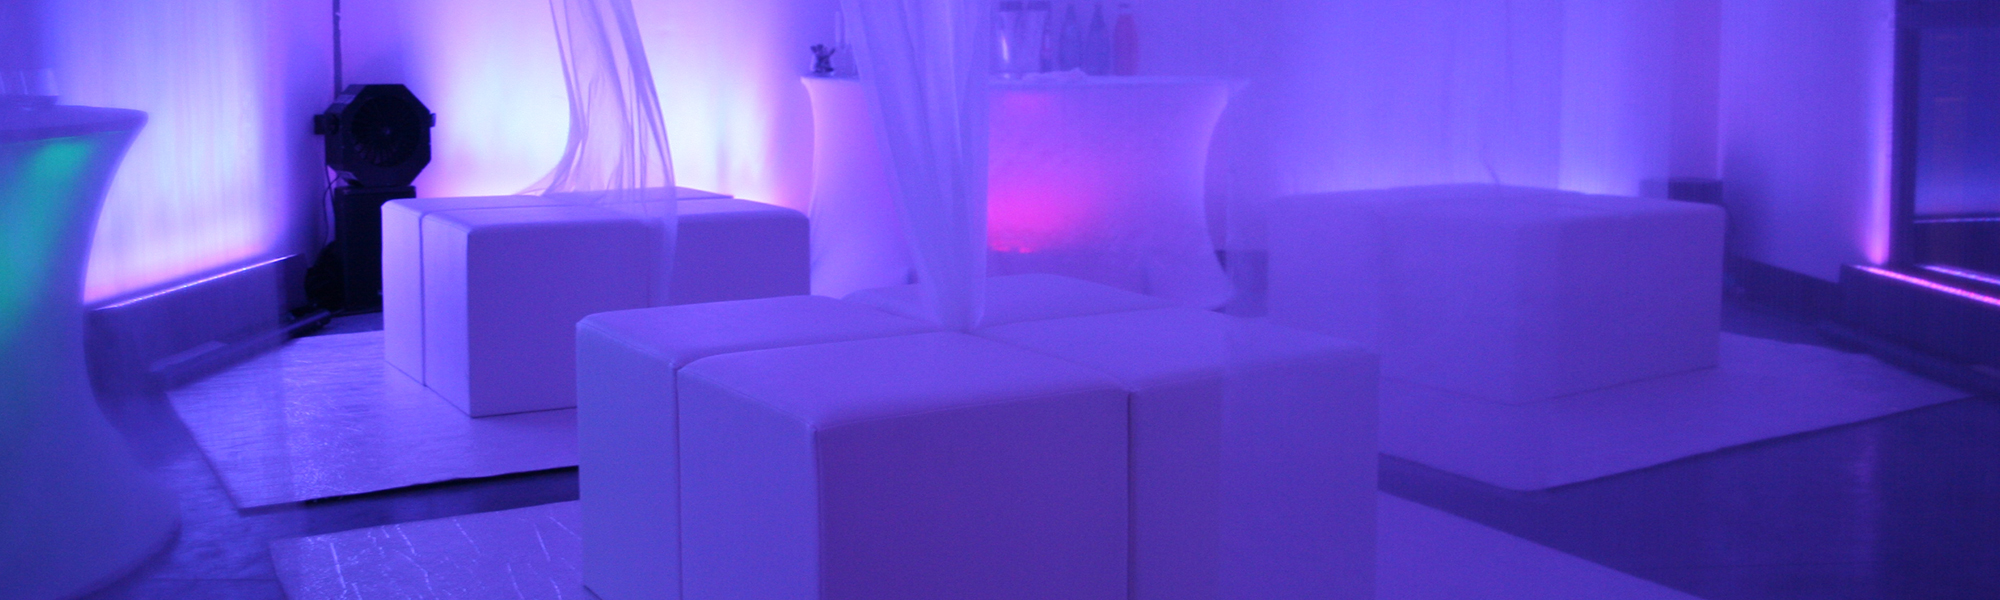 Location Bar, Divers Mobiliers